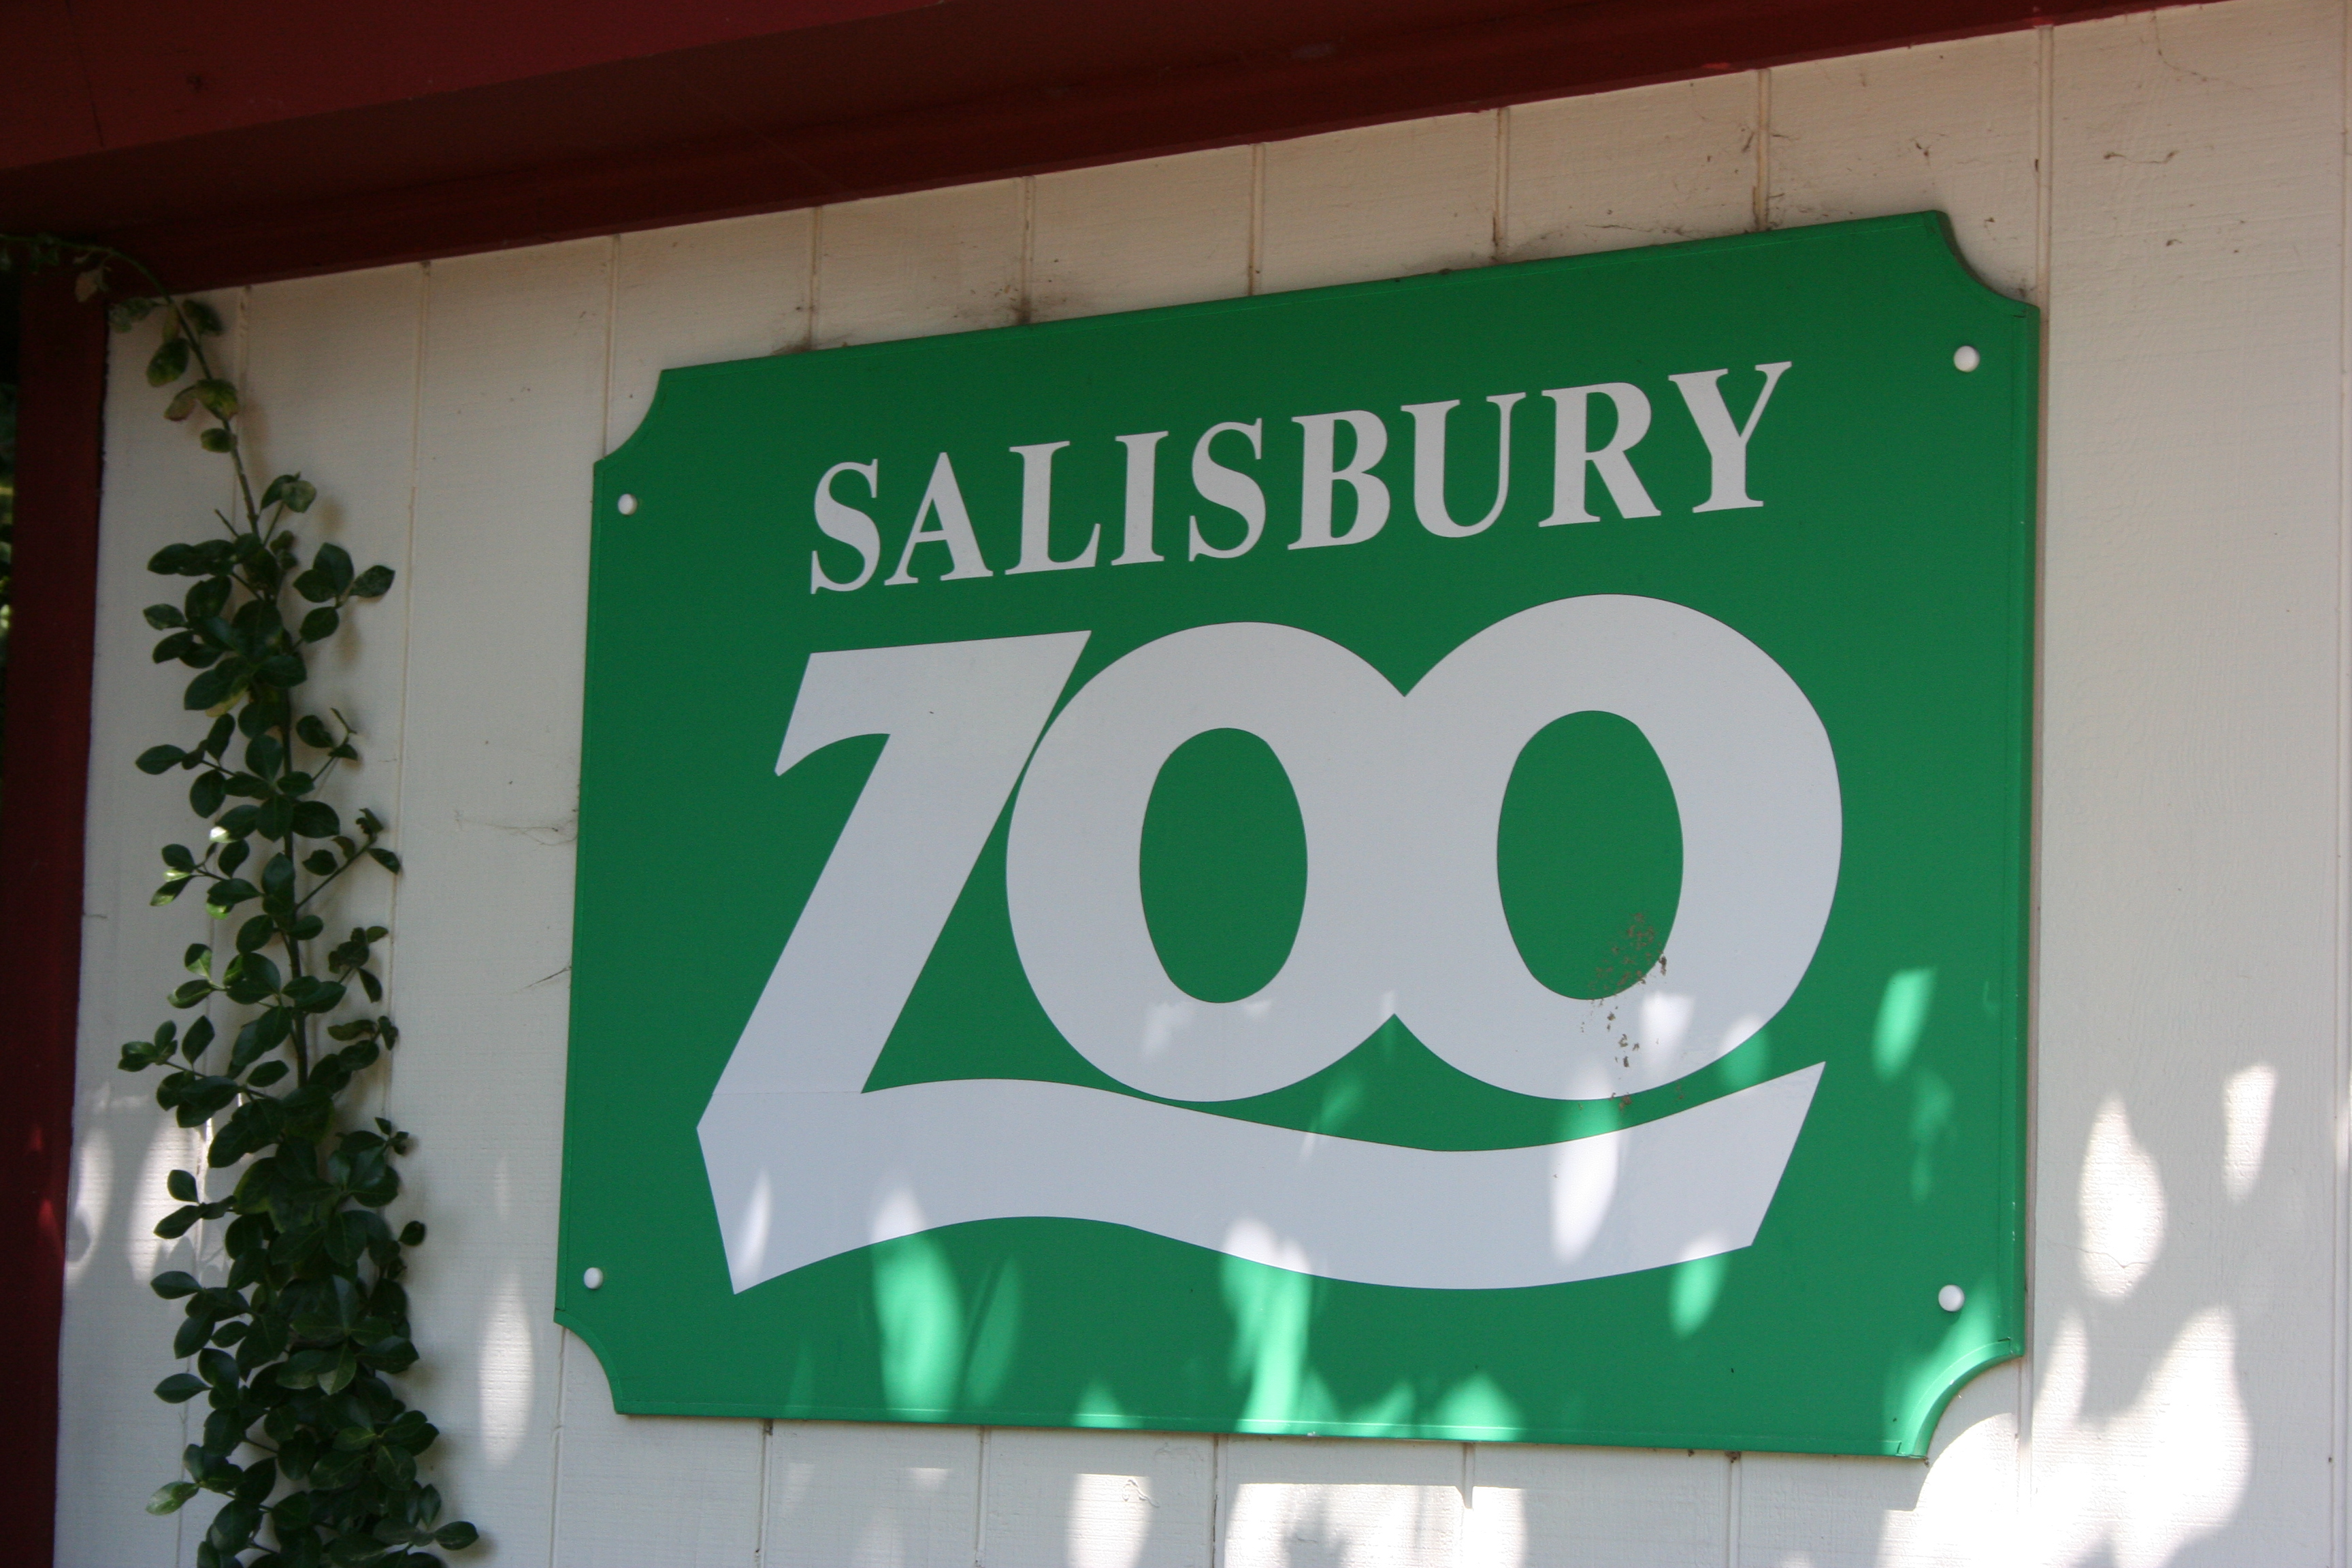 Salisbury Zoo - photo courtesy of Wicomico County Tourism